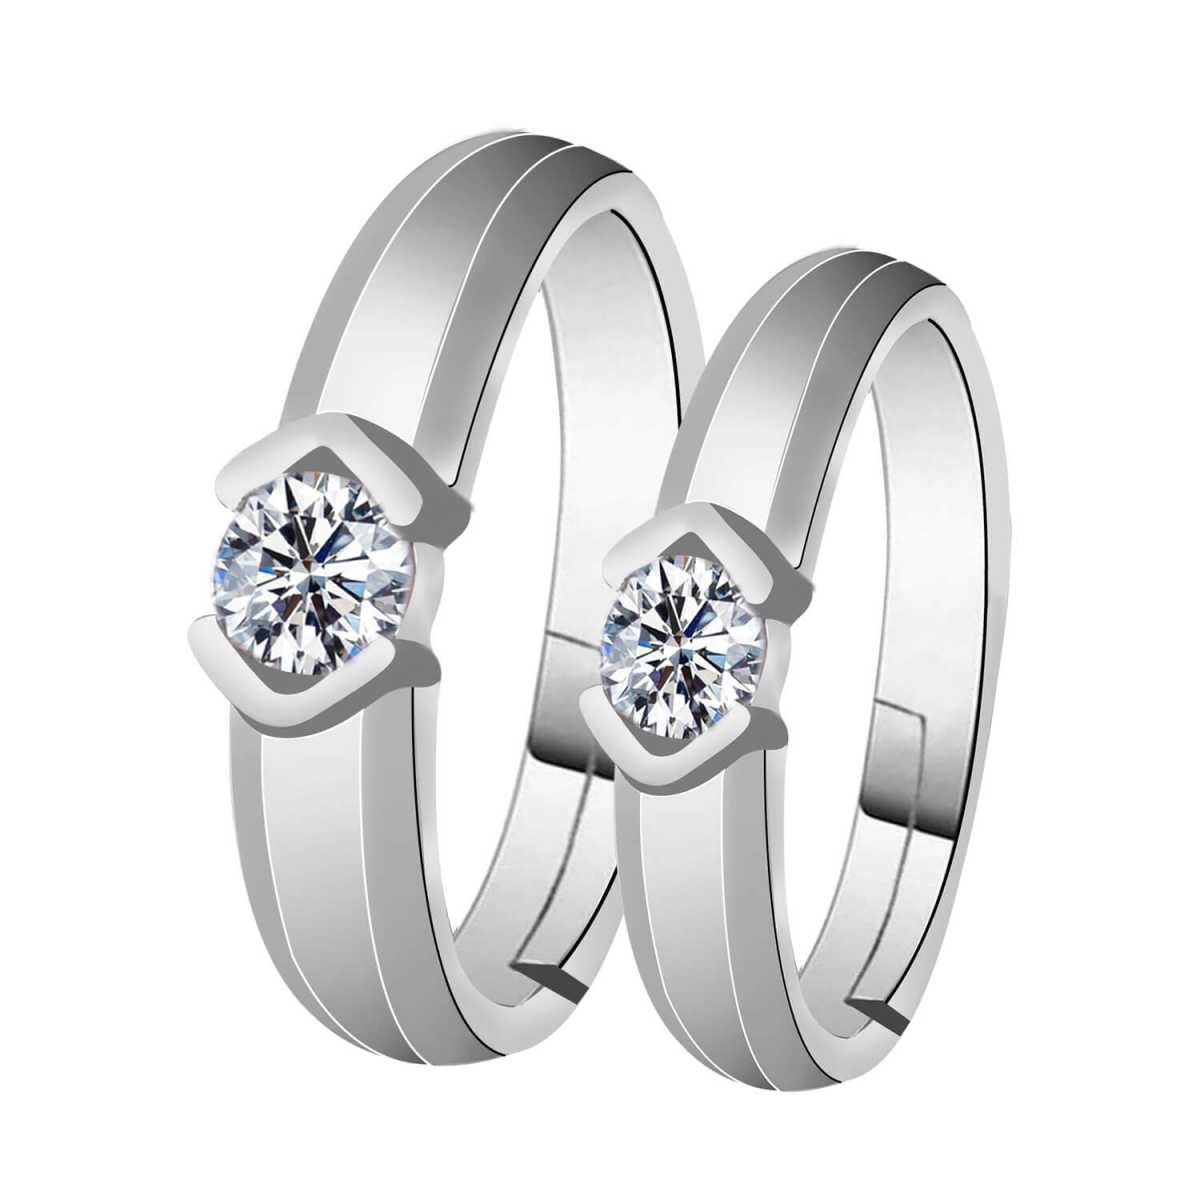 Silverplated  Stylist couple ring For Men And Women Jewellery